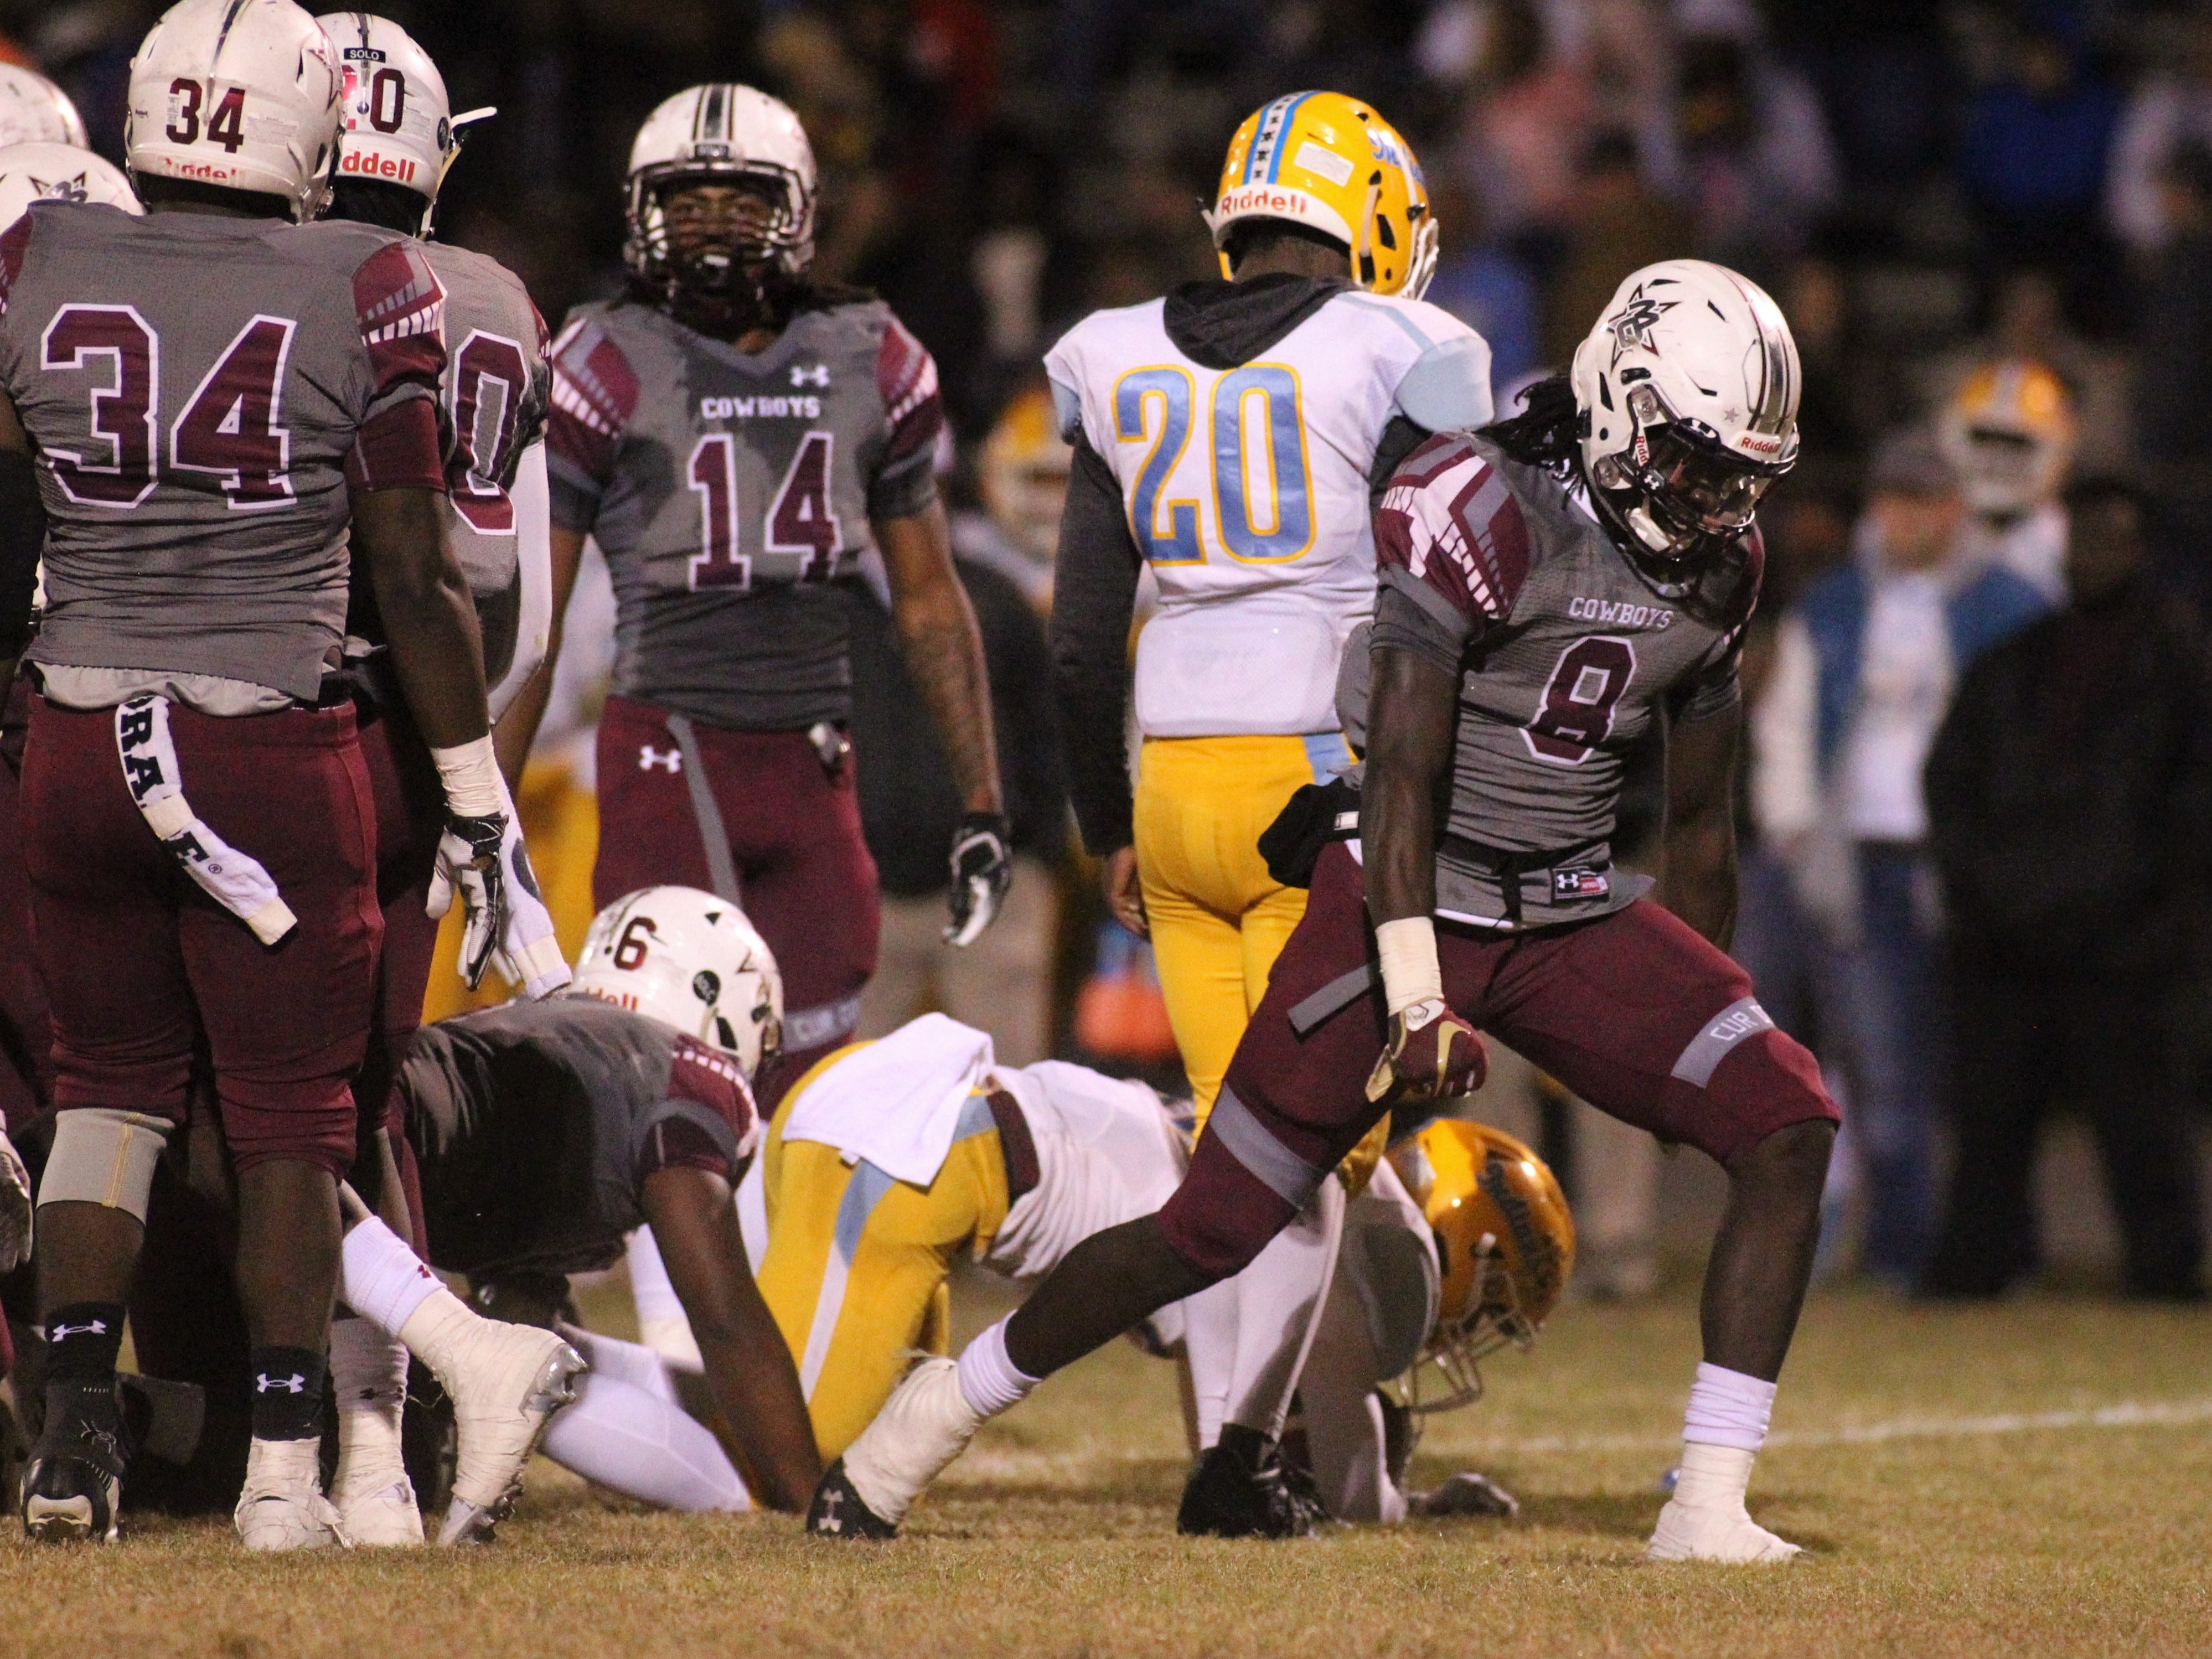 Madison County defensive back Travis Jay flexes after a big tackle as the Cowboys beat Chiefland 49-14 in a Region 3-1A final at Boot Hill Stadium on Friday, Nov. 23, 2018.